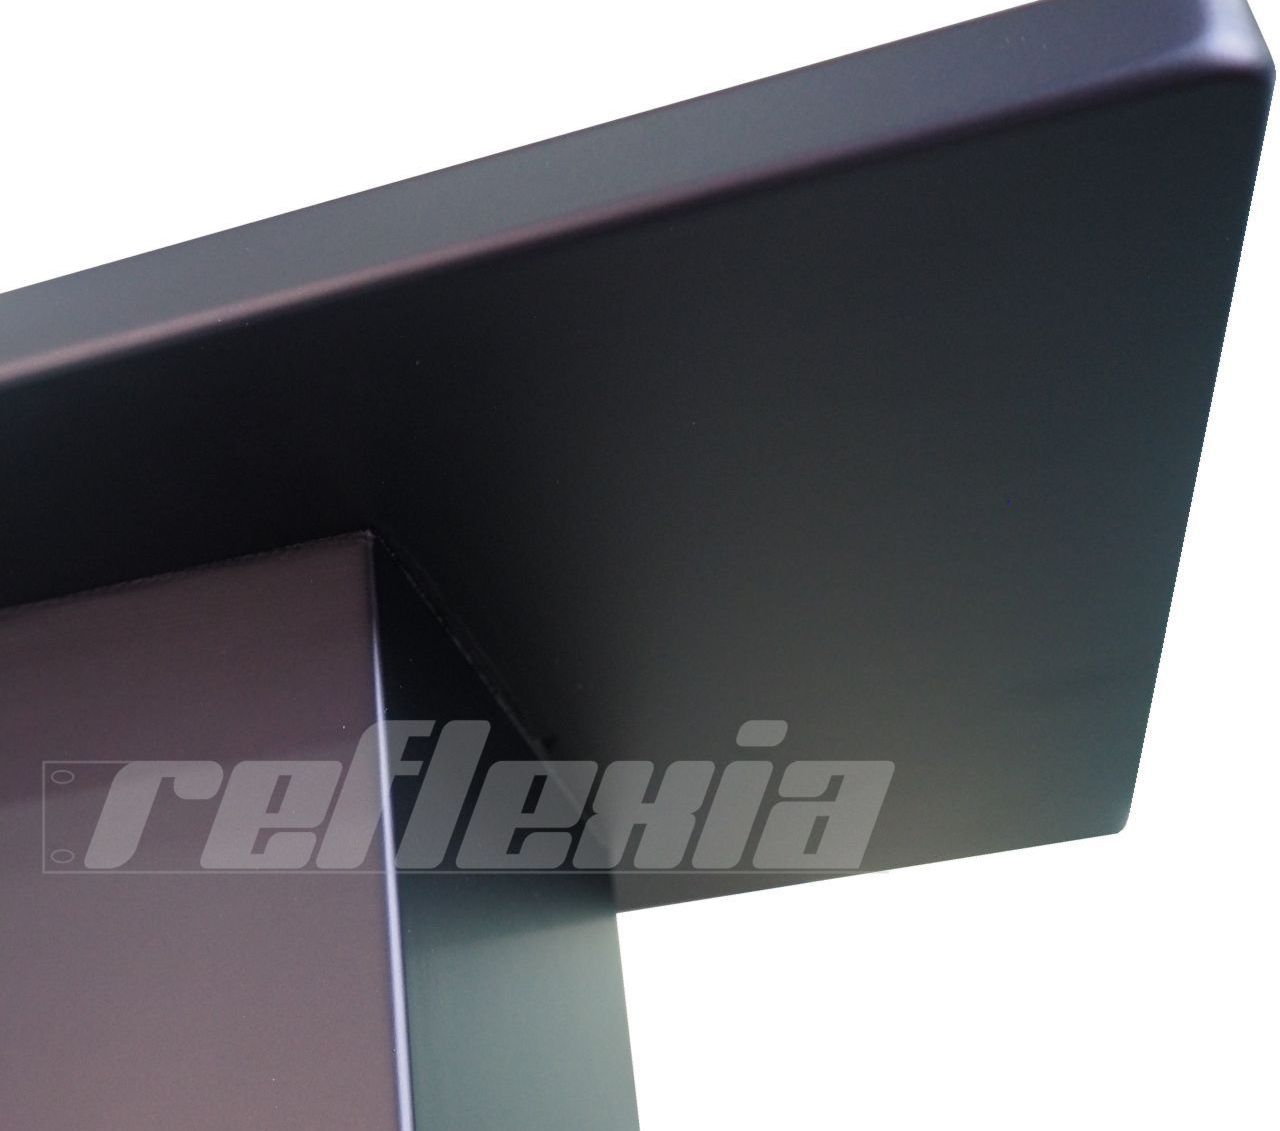 Reflexia Black Hole, Reflexion Arts' new stand for speakers